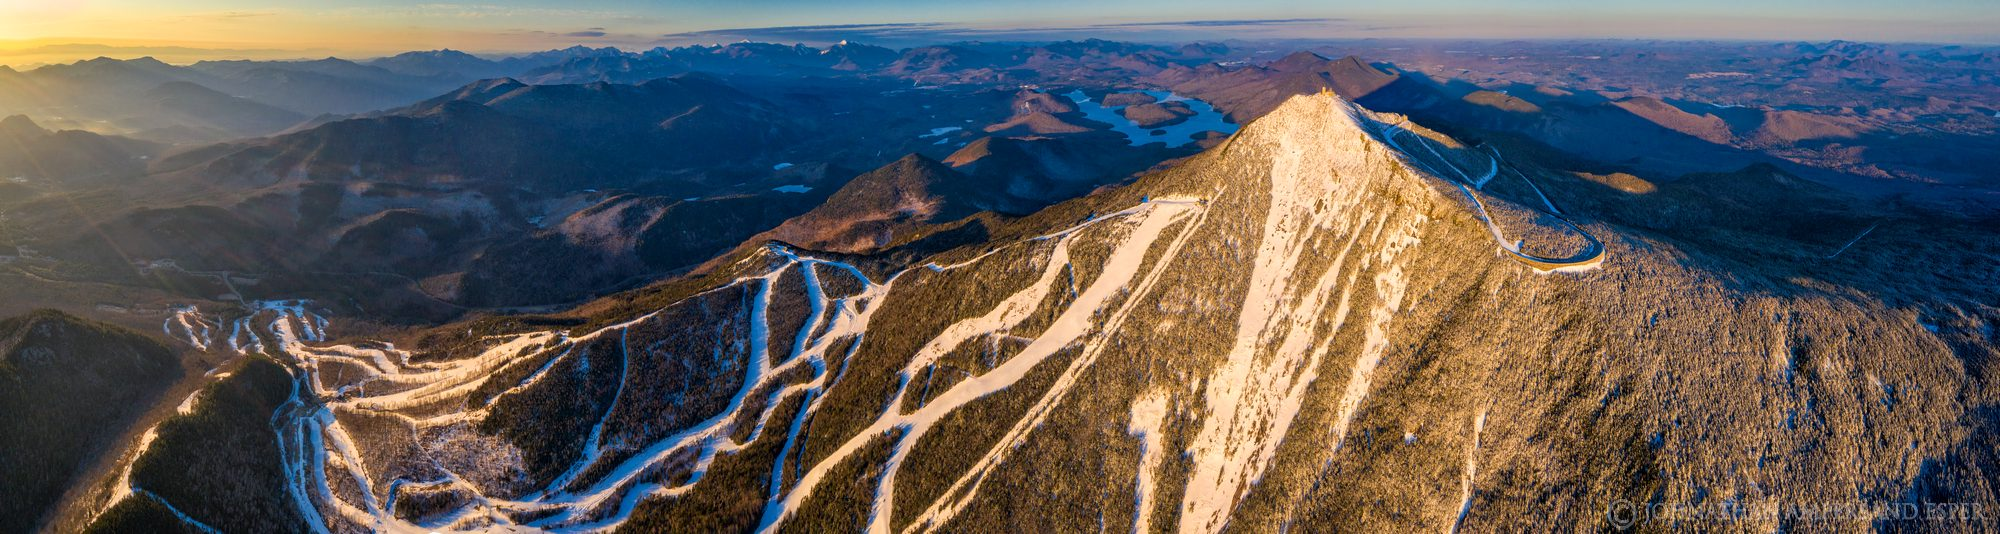 Whiteface Mt,Whiteface Mountain,Whiteface Ski Area,ski area,trails,Whiteface Mt ski area,summit,winter,March,2020,drone,aerial,panorama,sunrise,light,slides,summit slides,face,, photo